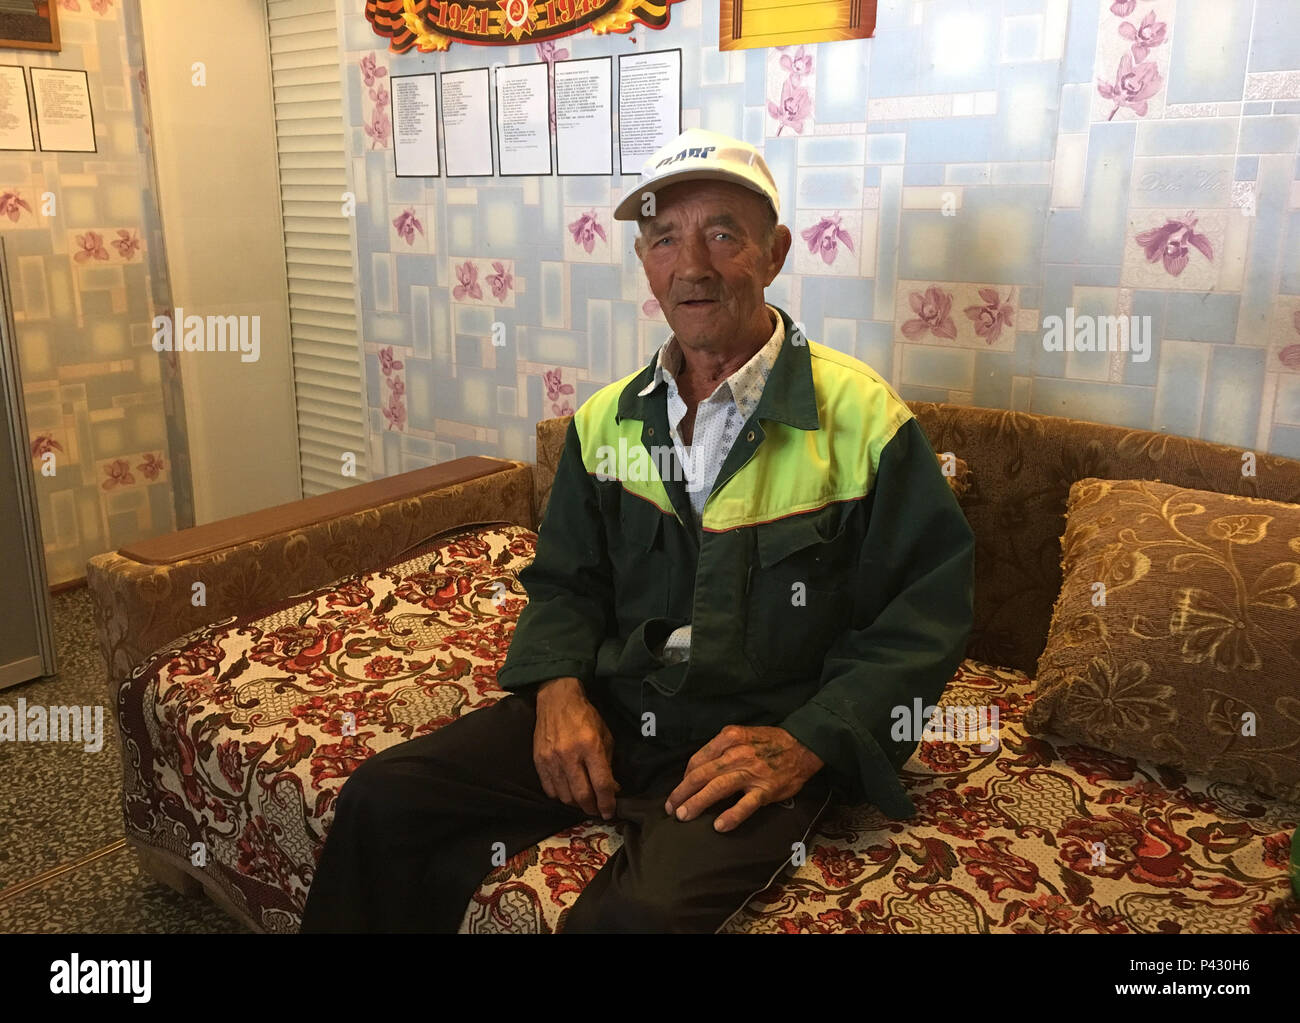 Rossoschka, Russia. 16th June, 2018. Vitaly Danilkin sits on a sofa in the anteroom of a small private museum on the «Rossoschka Military Cemetery». Here not only soldiers of the German Wehrmacht are buried, but also members of the Red Army. The 72-year-old has been working here for three years: mowing the lawn in summer, shoveling snow in winter, keeping the facility in order, everything a janitor would do. Credit: Martin Moravec/dpa/Alamy Live News - Stock Image